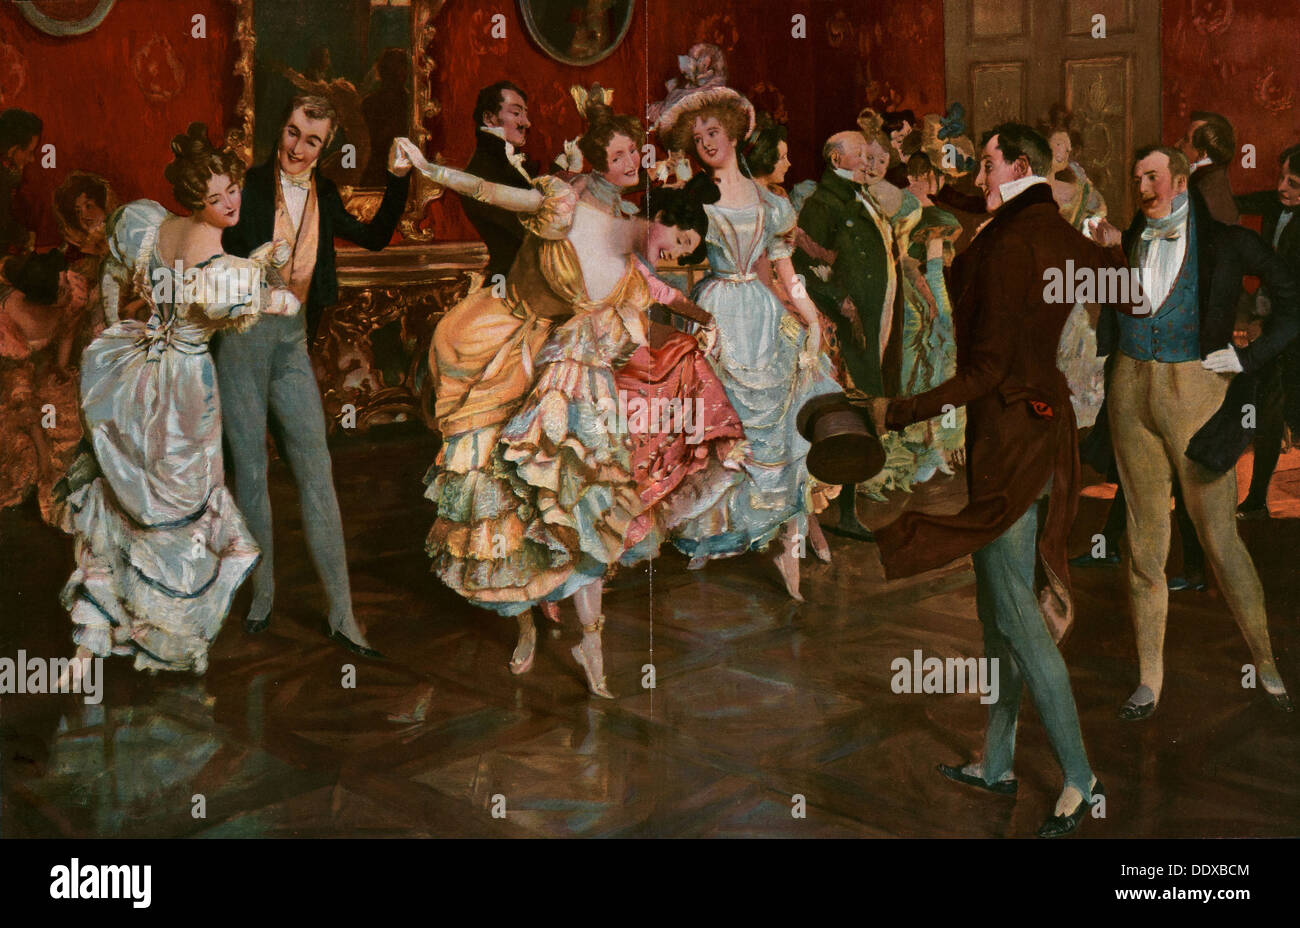 Dance painting by Leopold Schmutzler 1864-1941, bohemian painter, lived in Germany. dancing, dancer, young, motion, Stock Photo